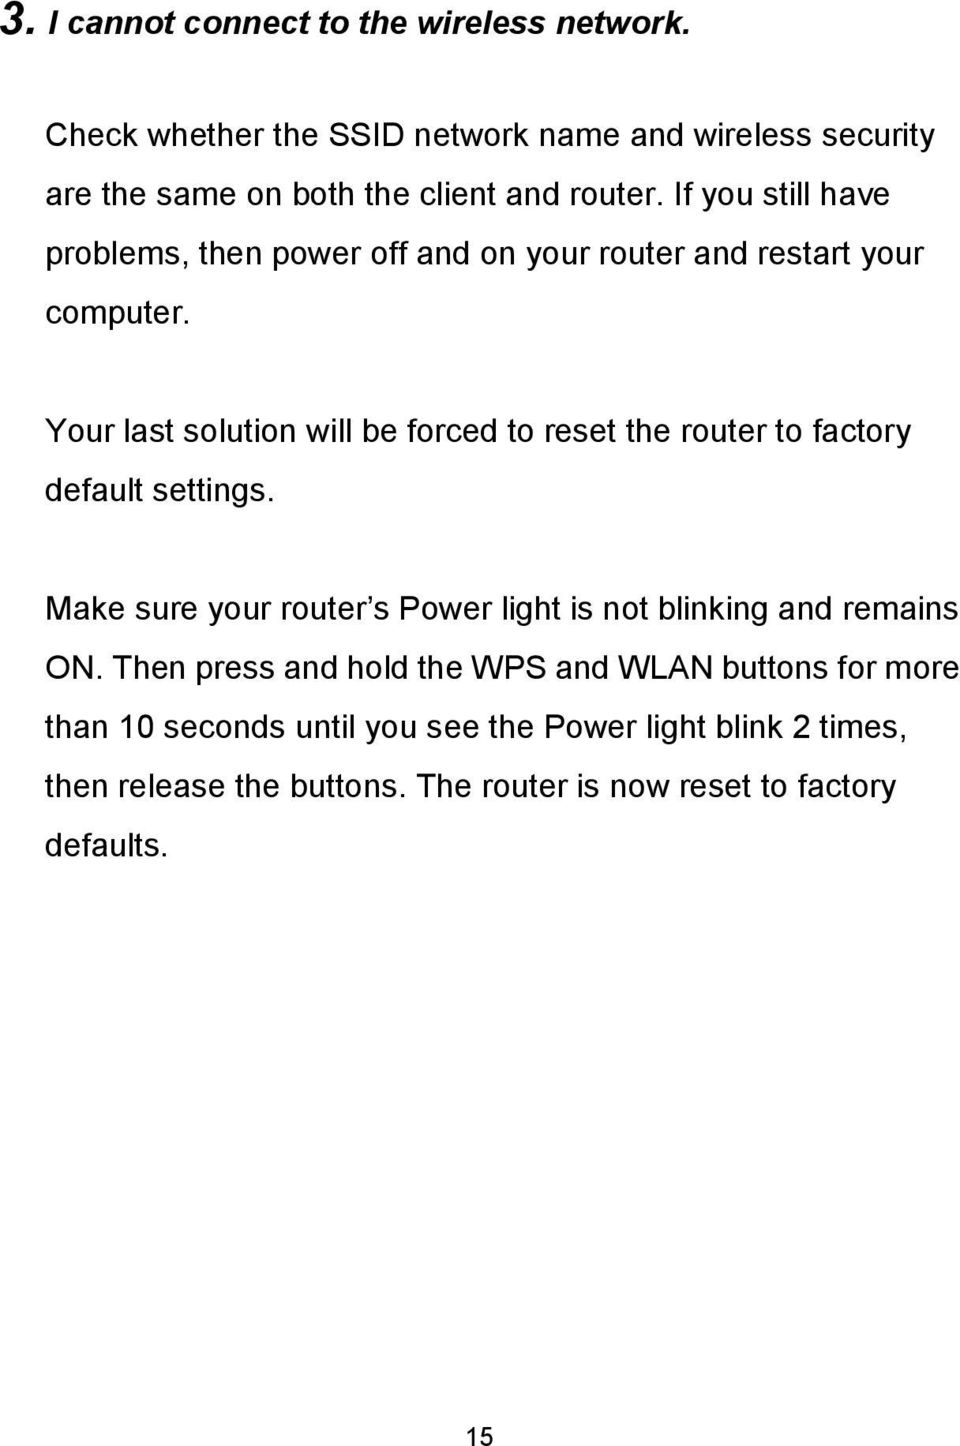 If you still have problems, then power off and on your router and restart your computer.